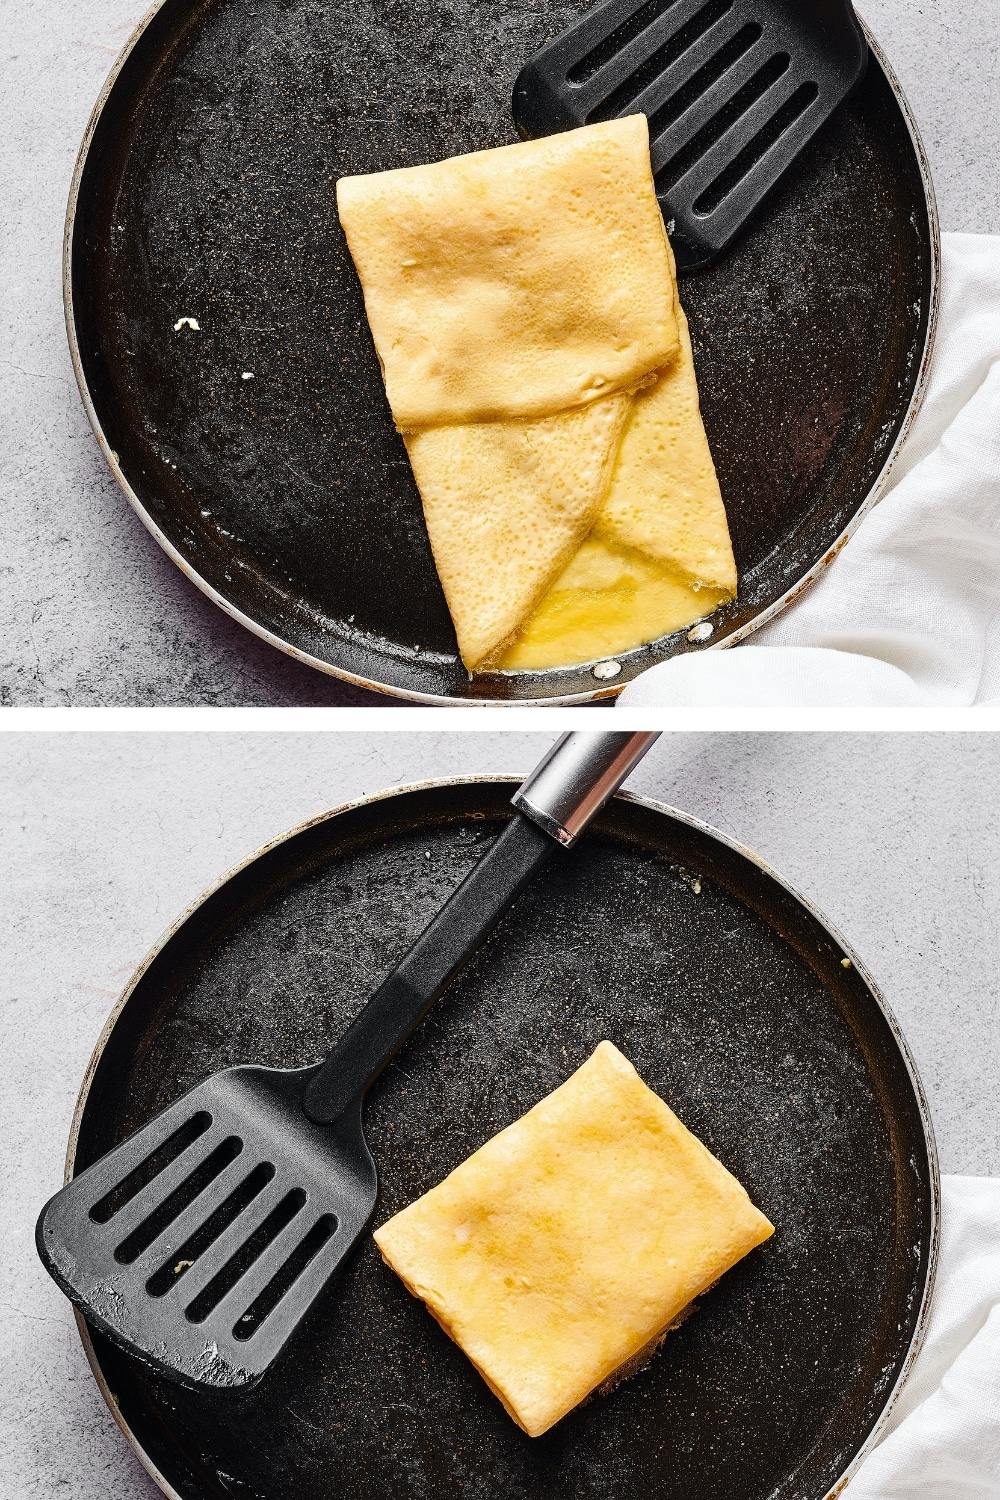 A two split picture: the top is a pan with a half folded Mcgriddle omelette on it. The bottom picture is a pan with a folded square Mcgriddle omelette on it.